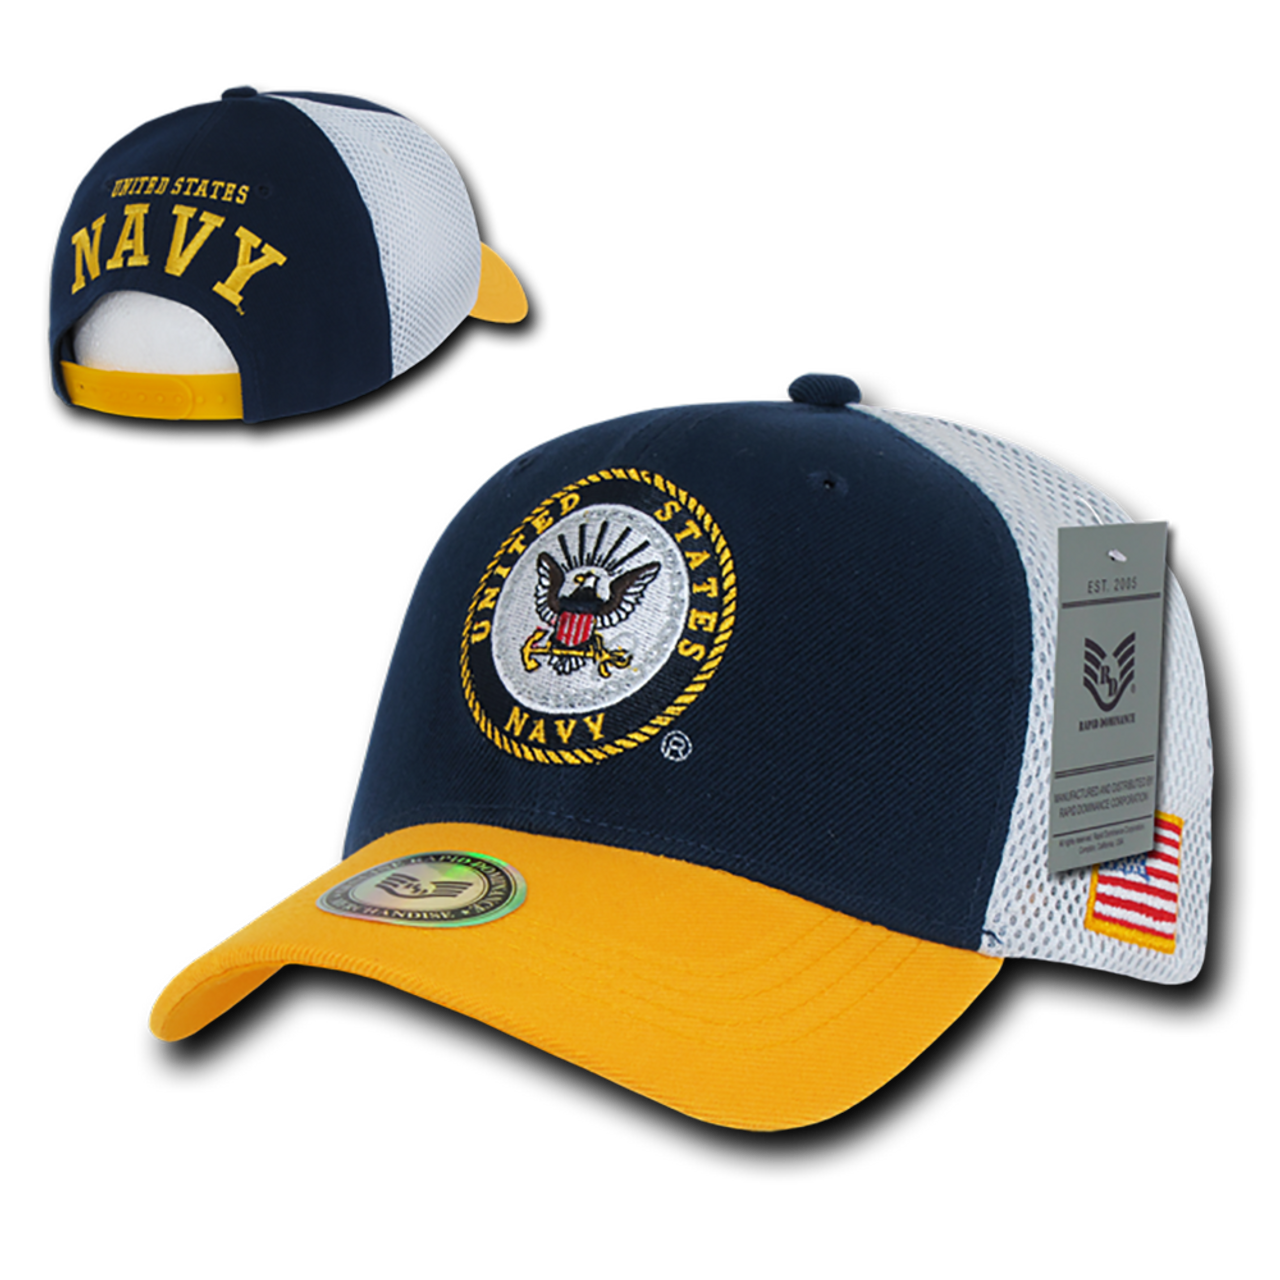 S010 - Military Hat - US Navy Cap - Cotton Mesh - Navy/Gold